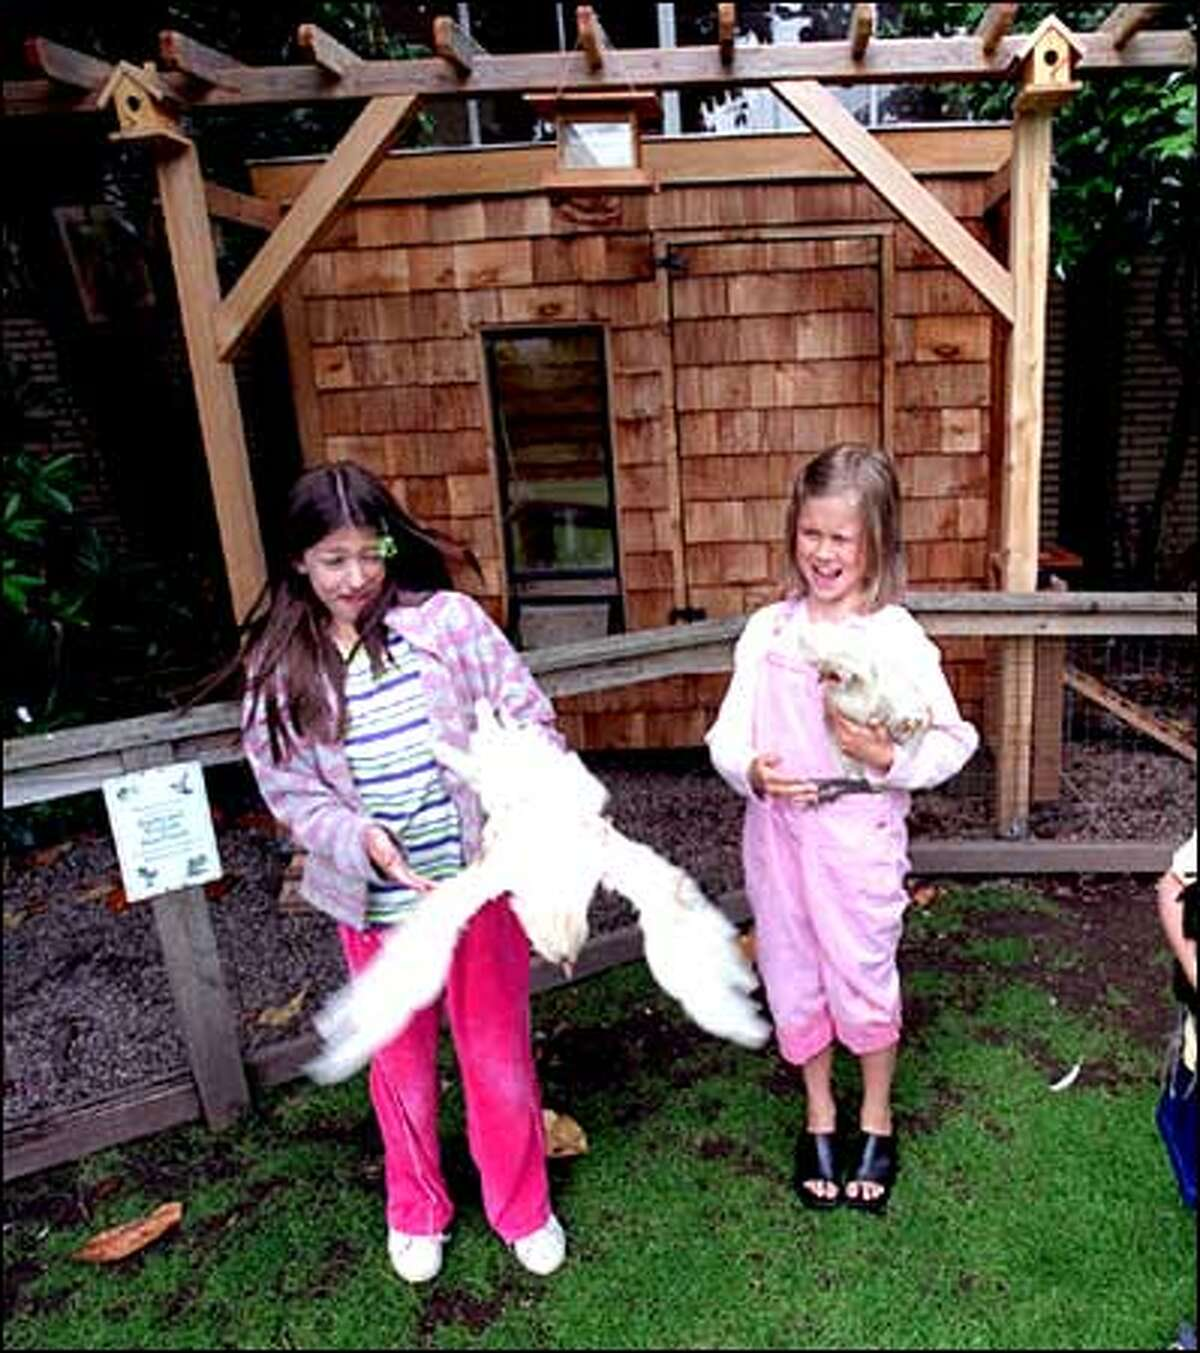 Catherine Blaine School in Magnolia is home to a chicken coop and nine chickens. Ciara Carucci, left, and Avery Carruthers try to get a handle on two of the residents of the stylish and sturdy coop behind them.